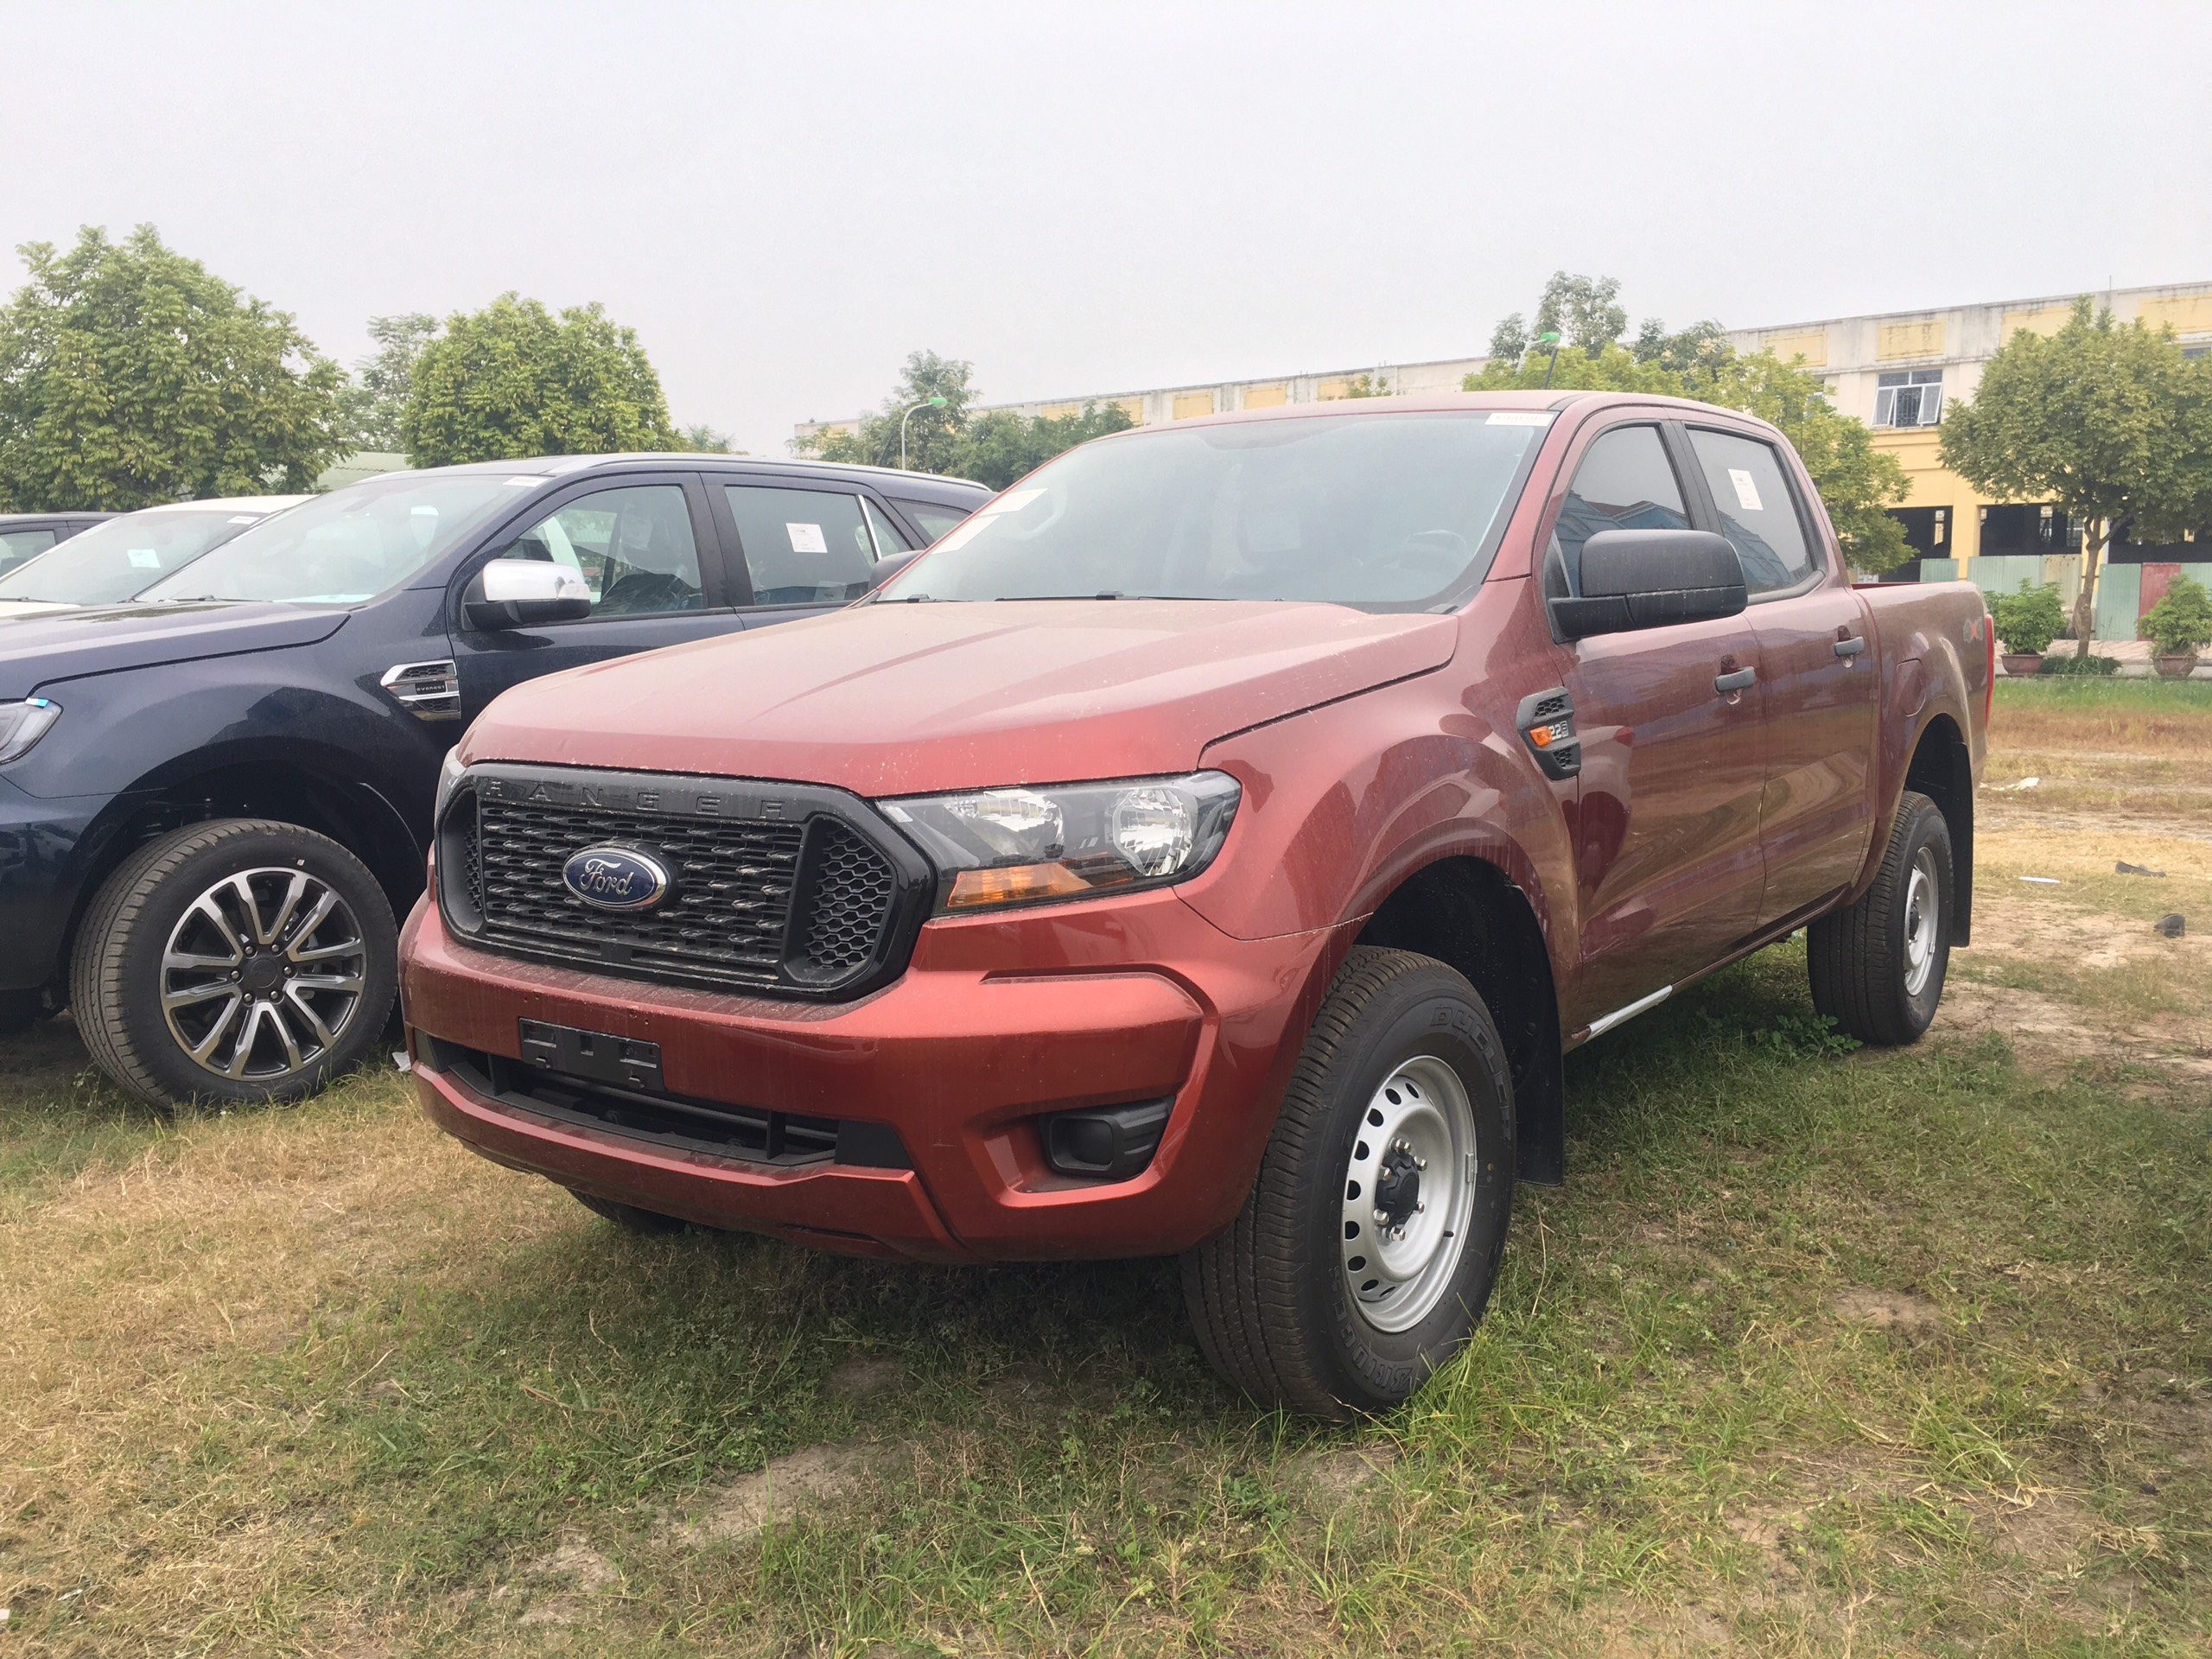 Ford Ranger XL 2.2L 4×4 MT9